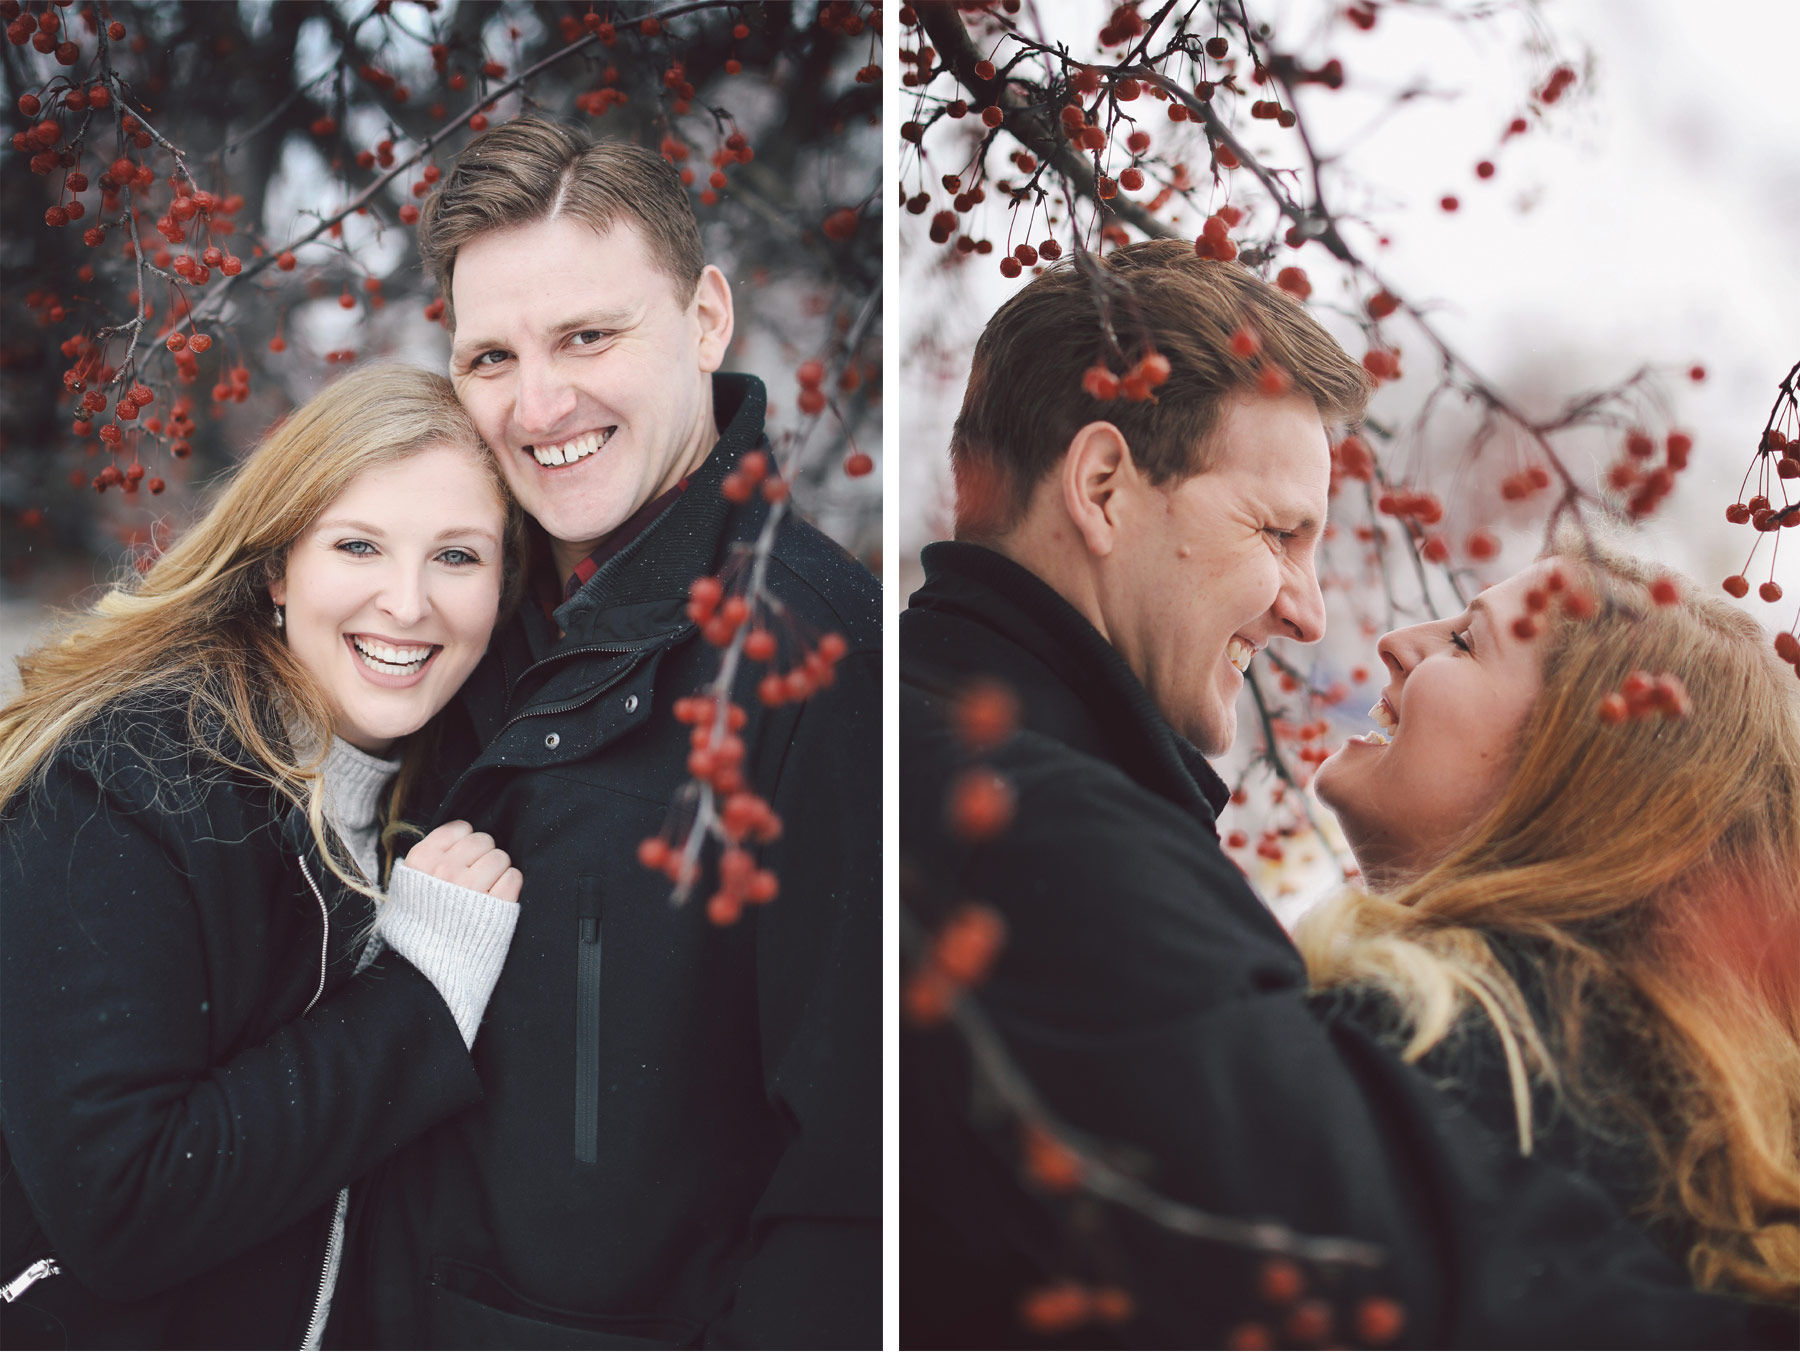 01-Vick-Photography-Engagement-Session-Winter-Outdoor-Couple-Veronica-and-Tyler.jpg